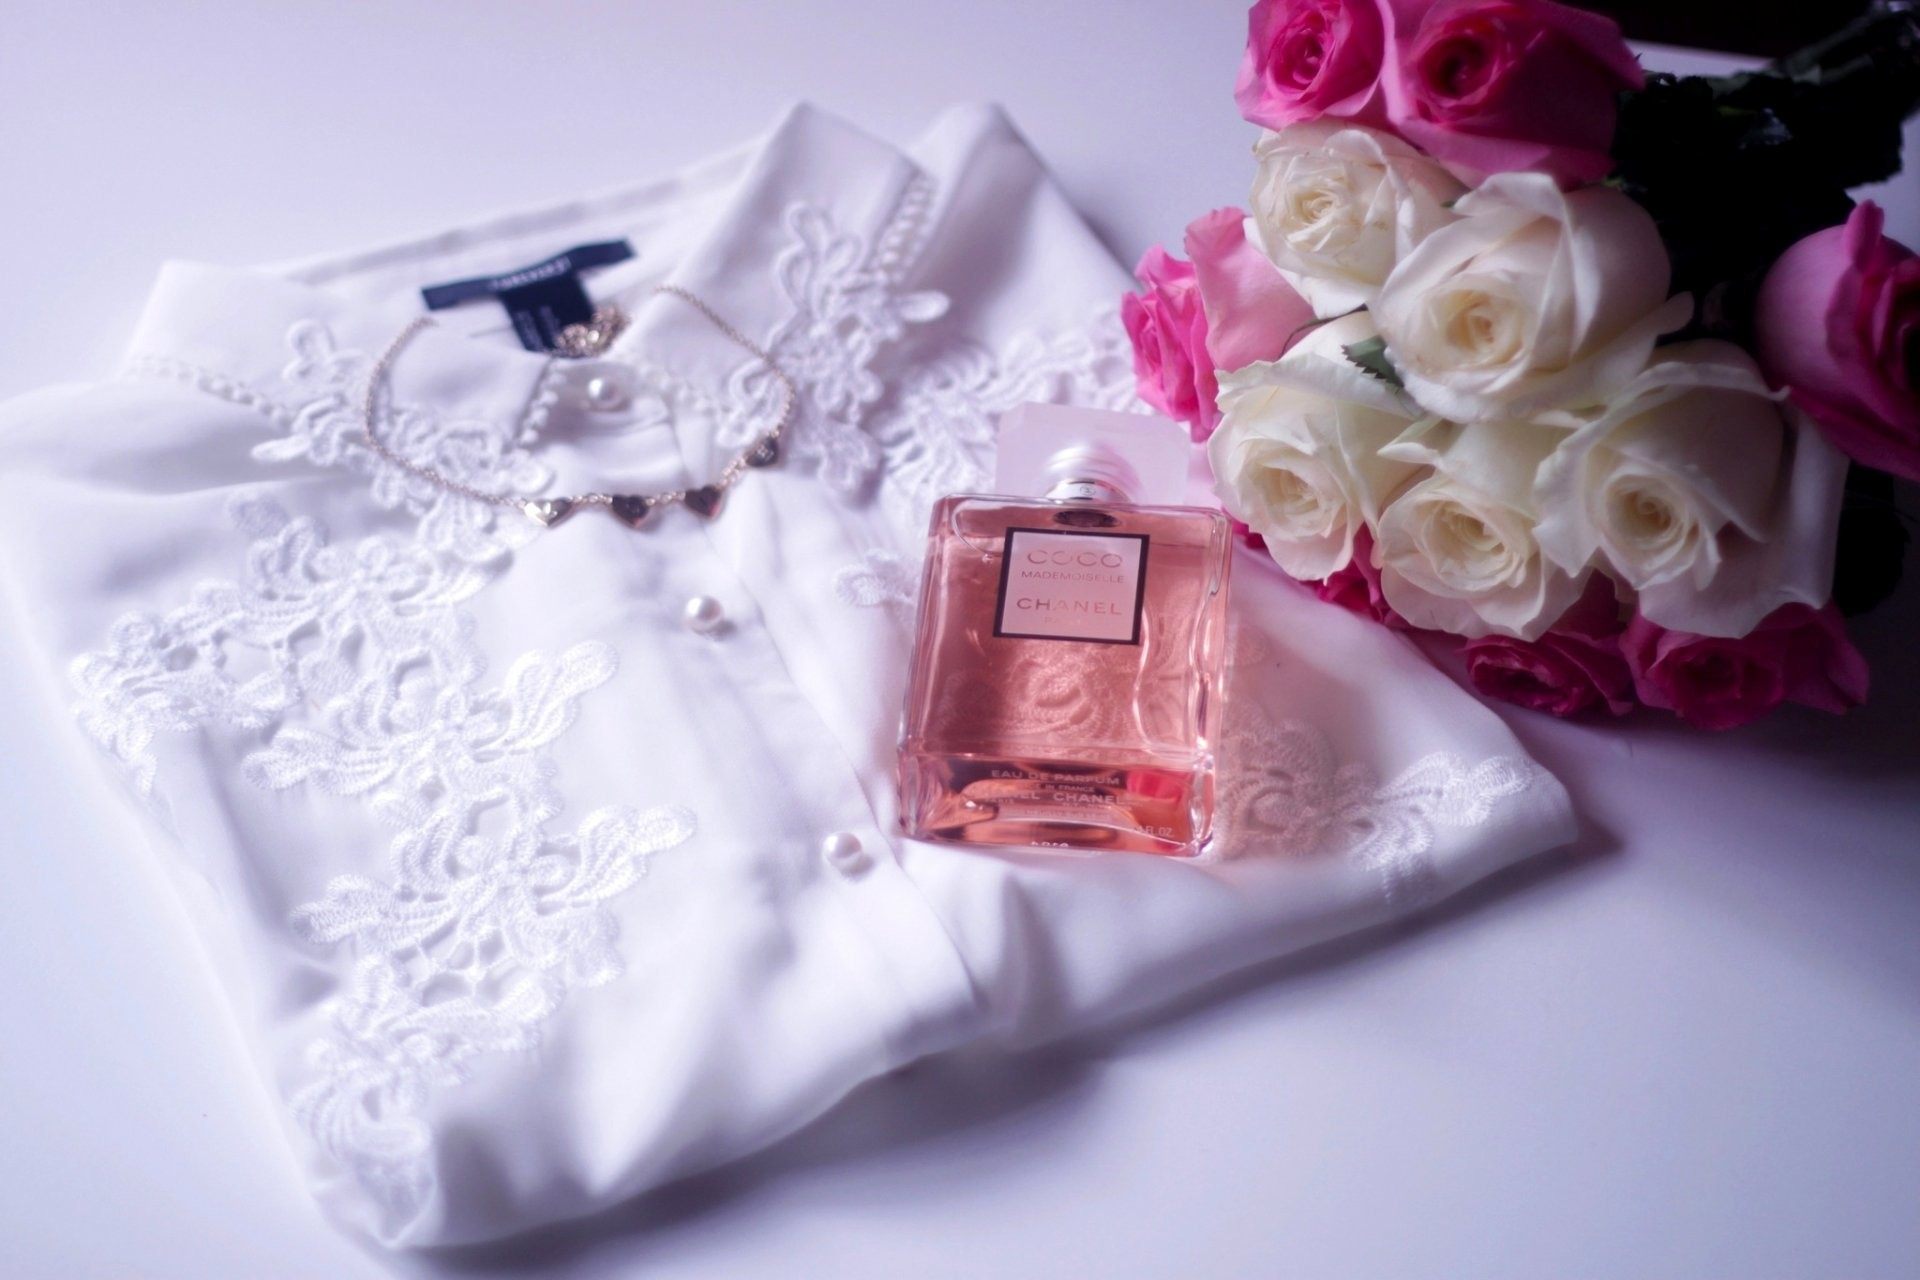 1920x1280 perfume chanel coco mademoiselle blouse shirt flower bouquet roses white  pink